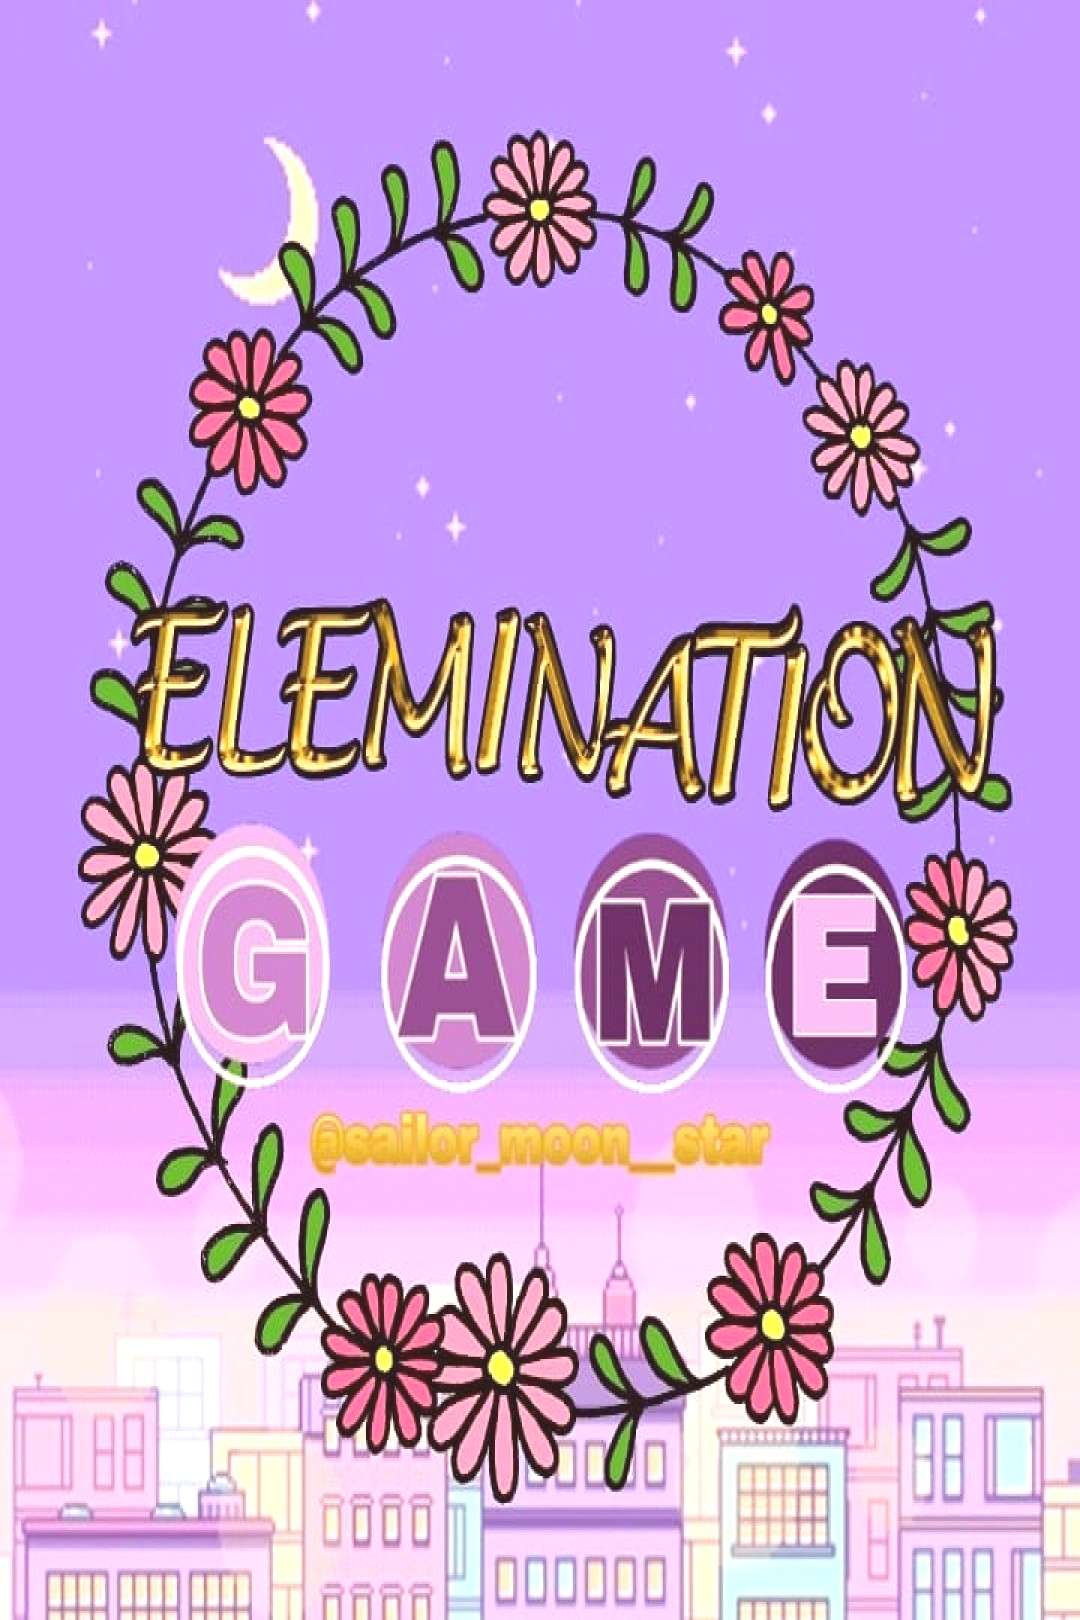 Welcome to my elimination game! Rules: 1.) Like my comment of the